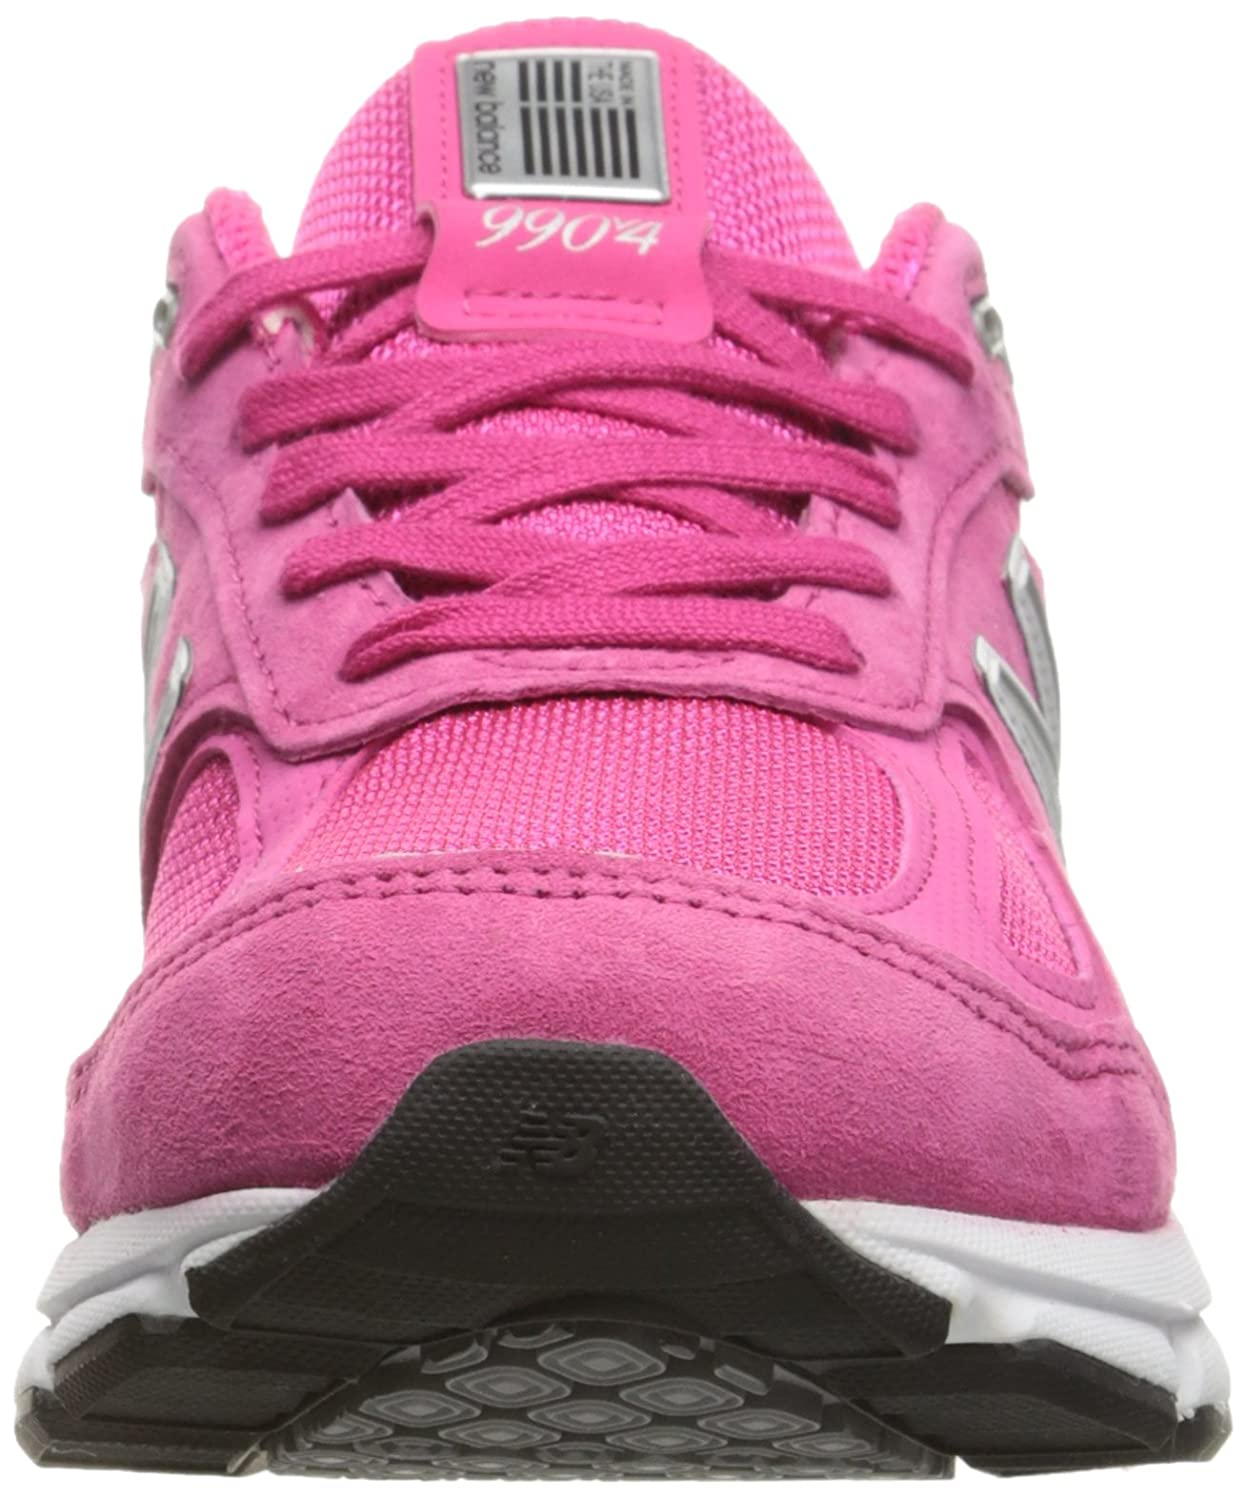 New-Balance-990-990v4-Classicc-Retro-Fashion-Sneaker-Made-in-USA thumbnail 72